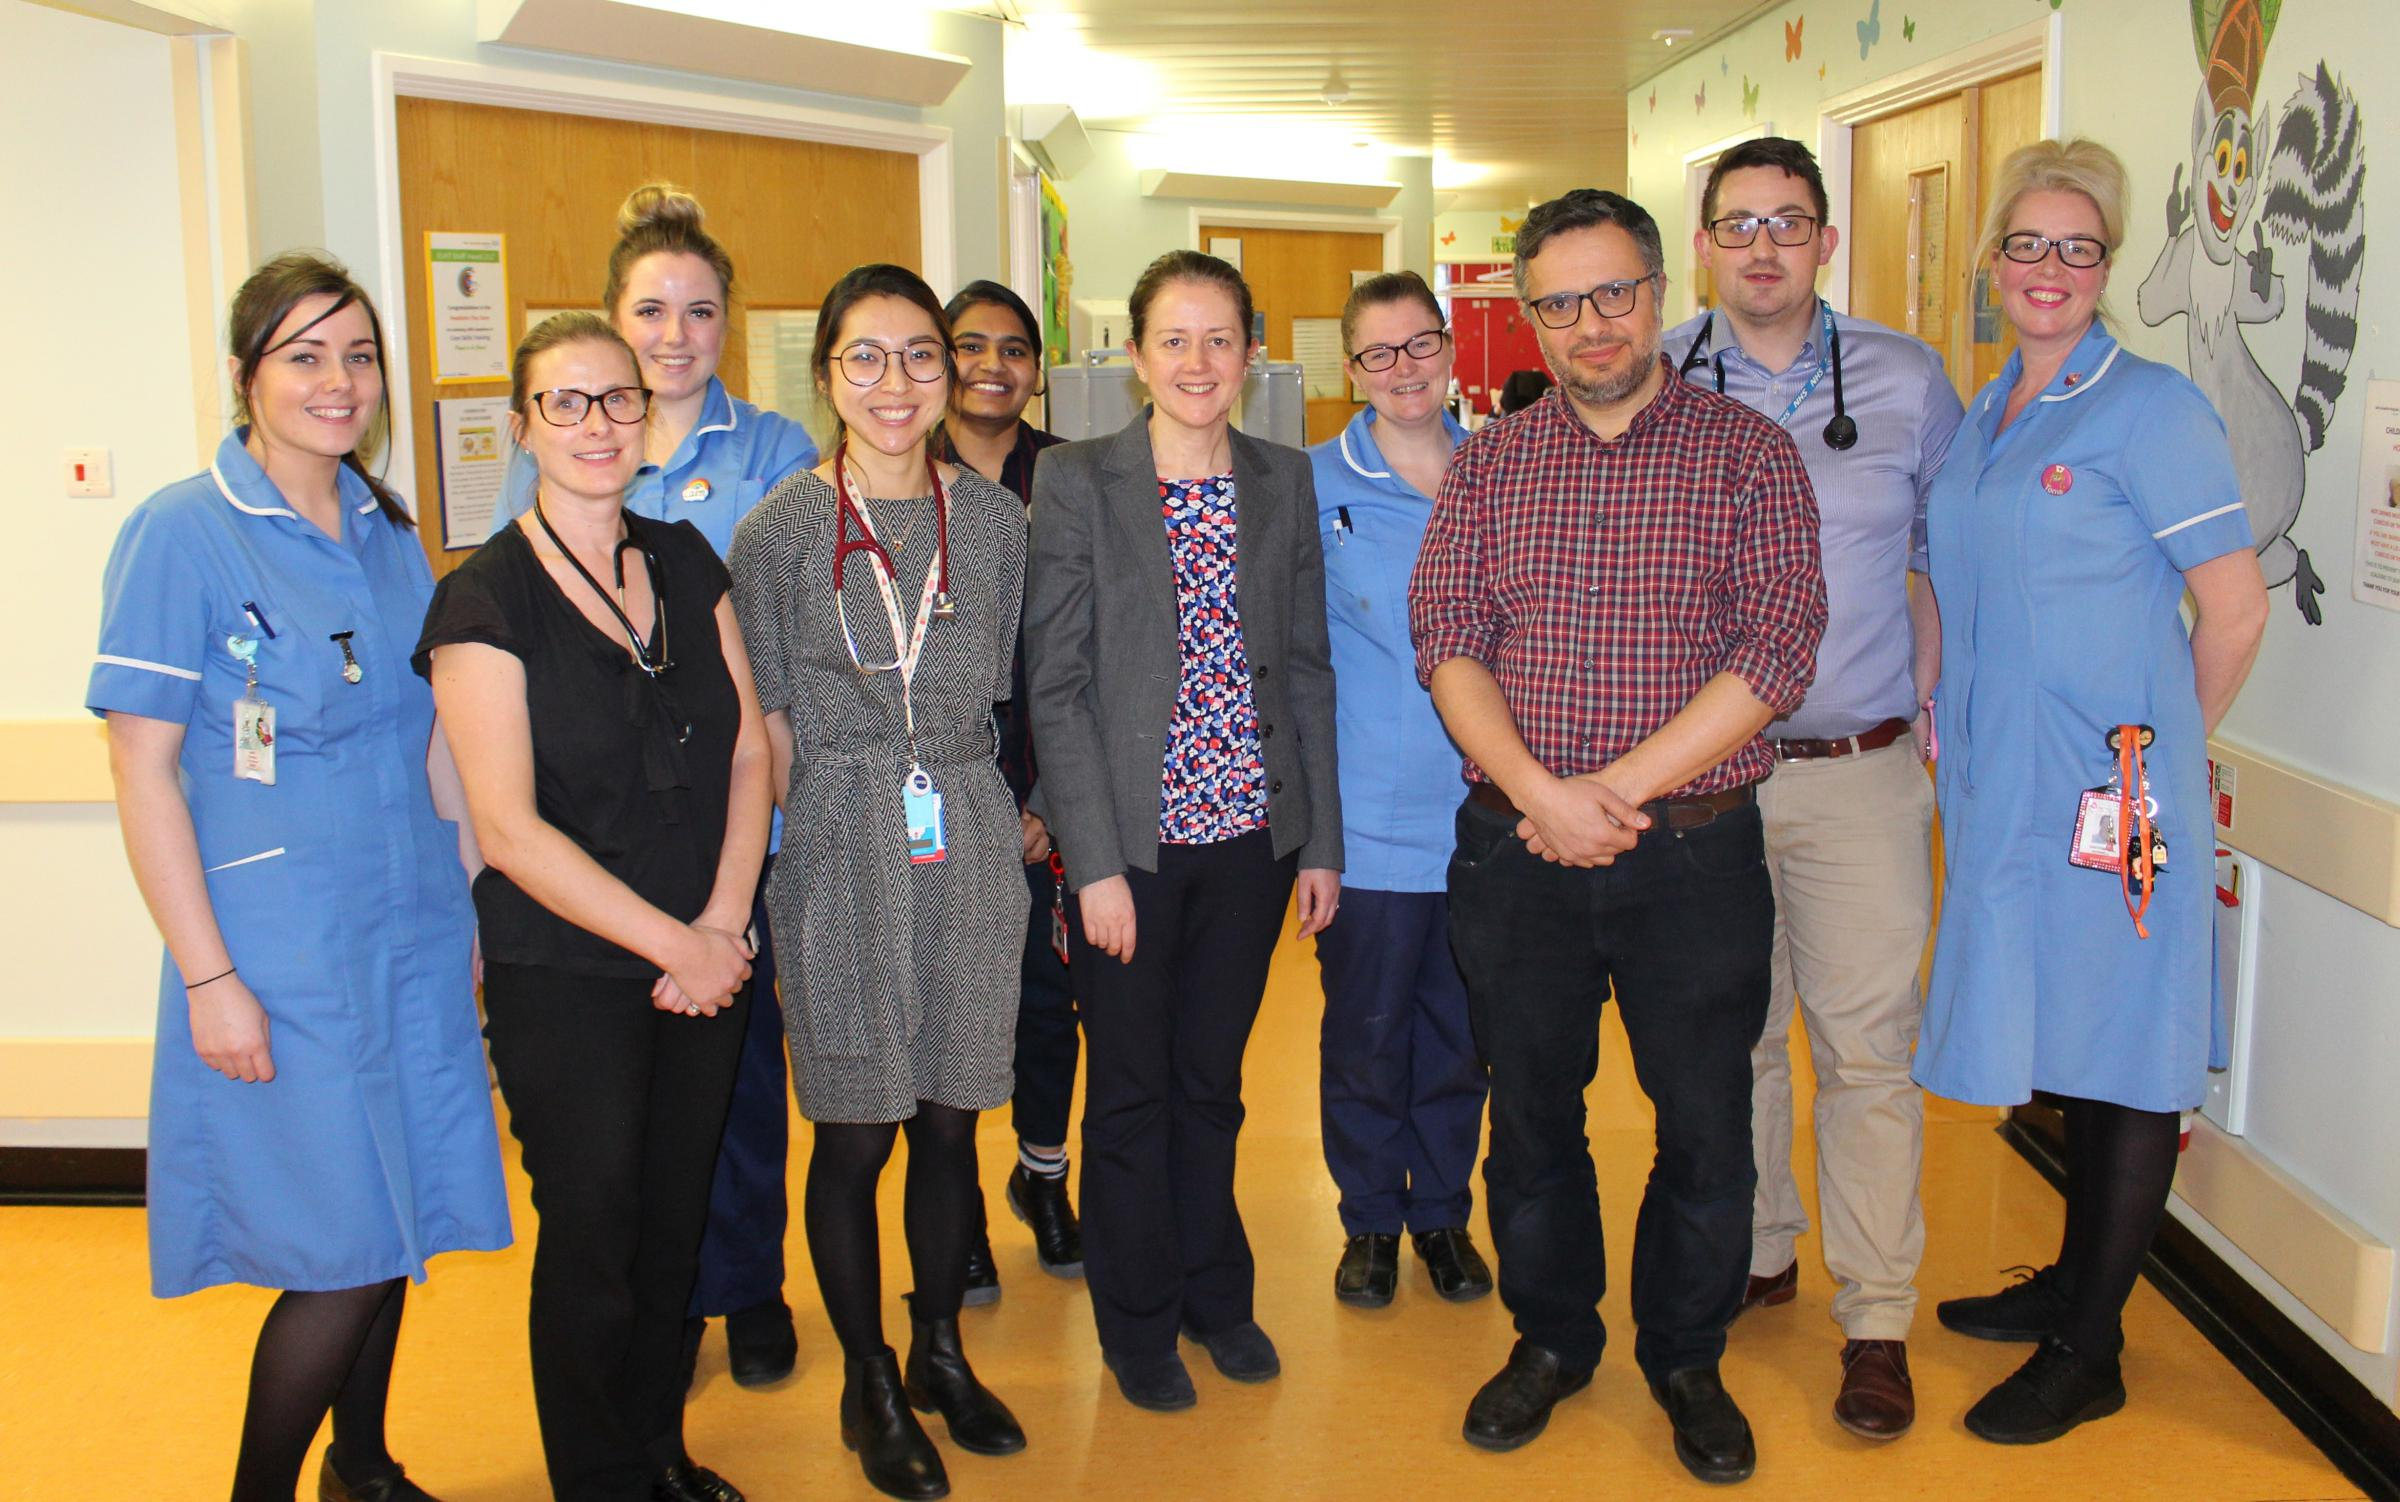 Members of the East Lancashire Hospitals NHS Trust paediatric department